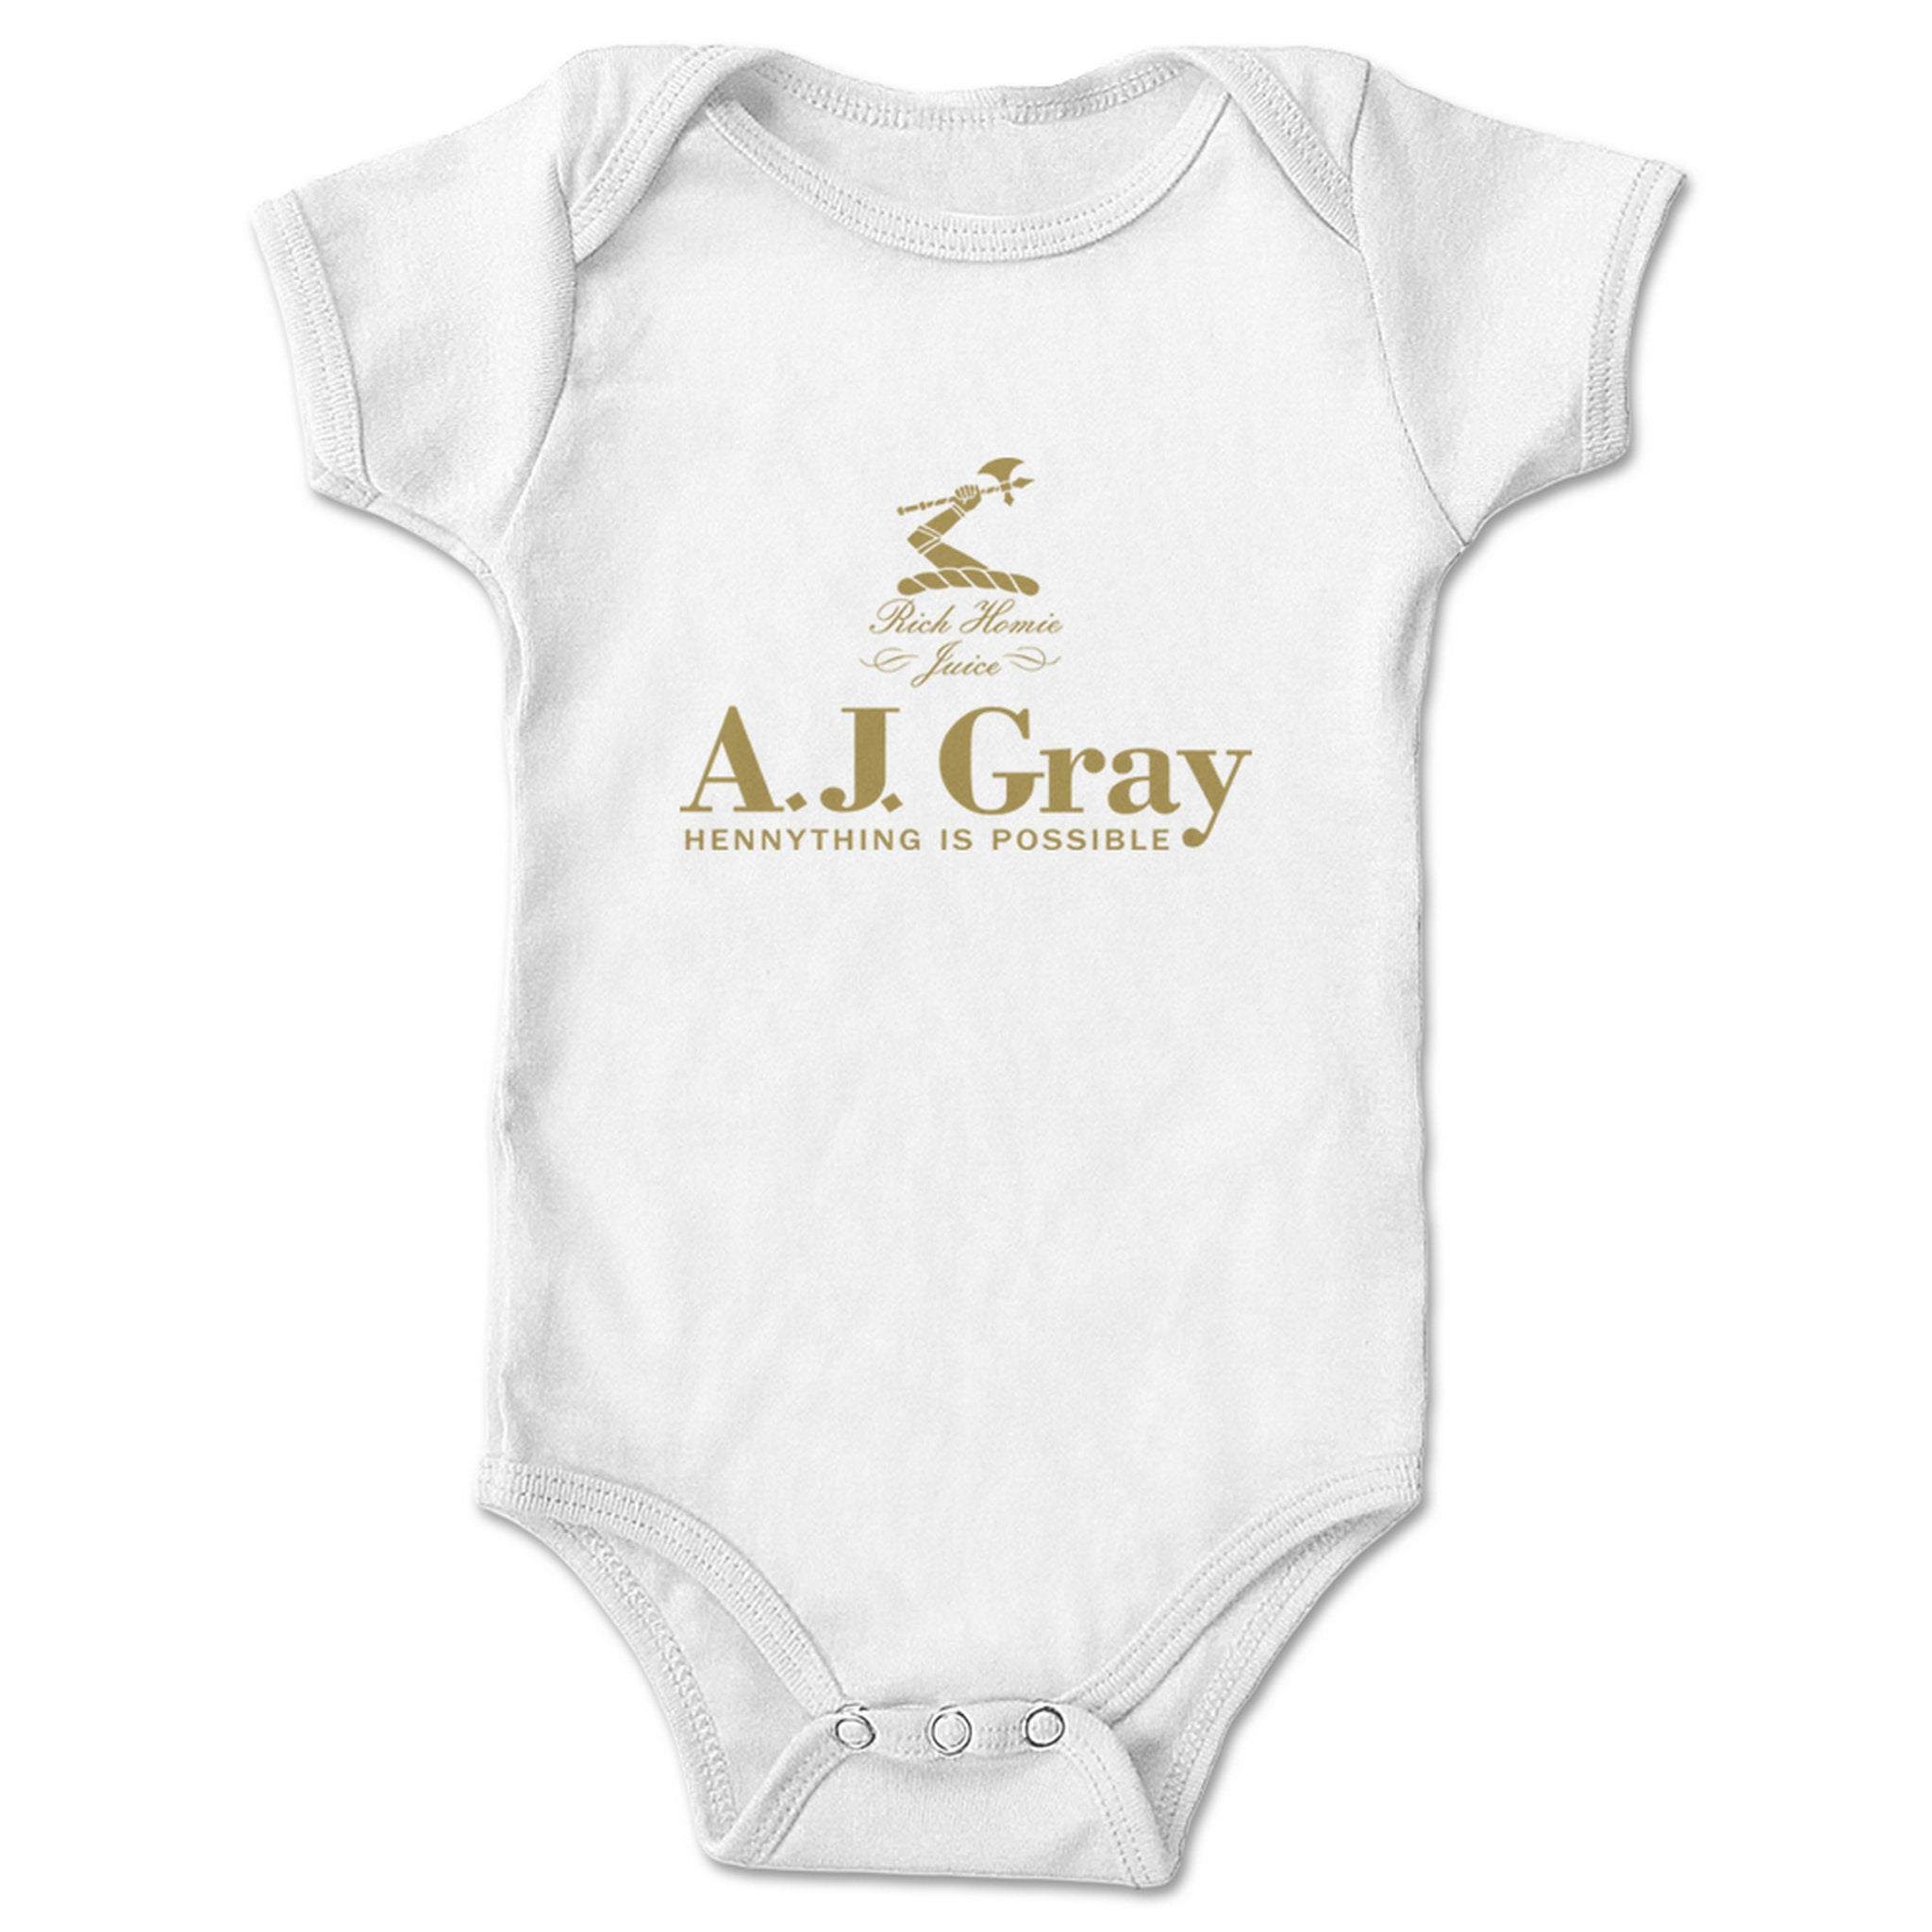 4bd847977 AJ Gray - Hennything Is Possible